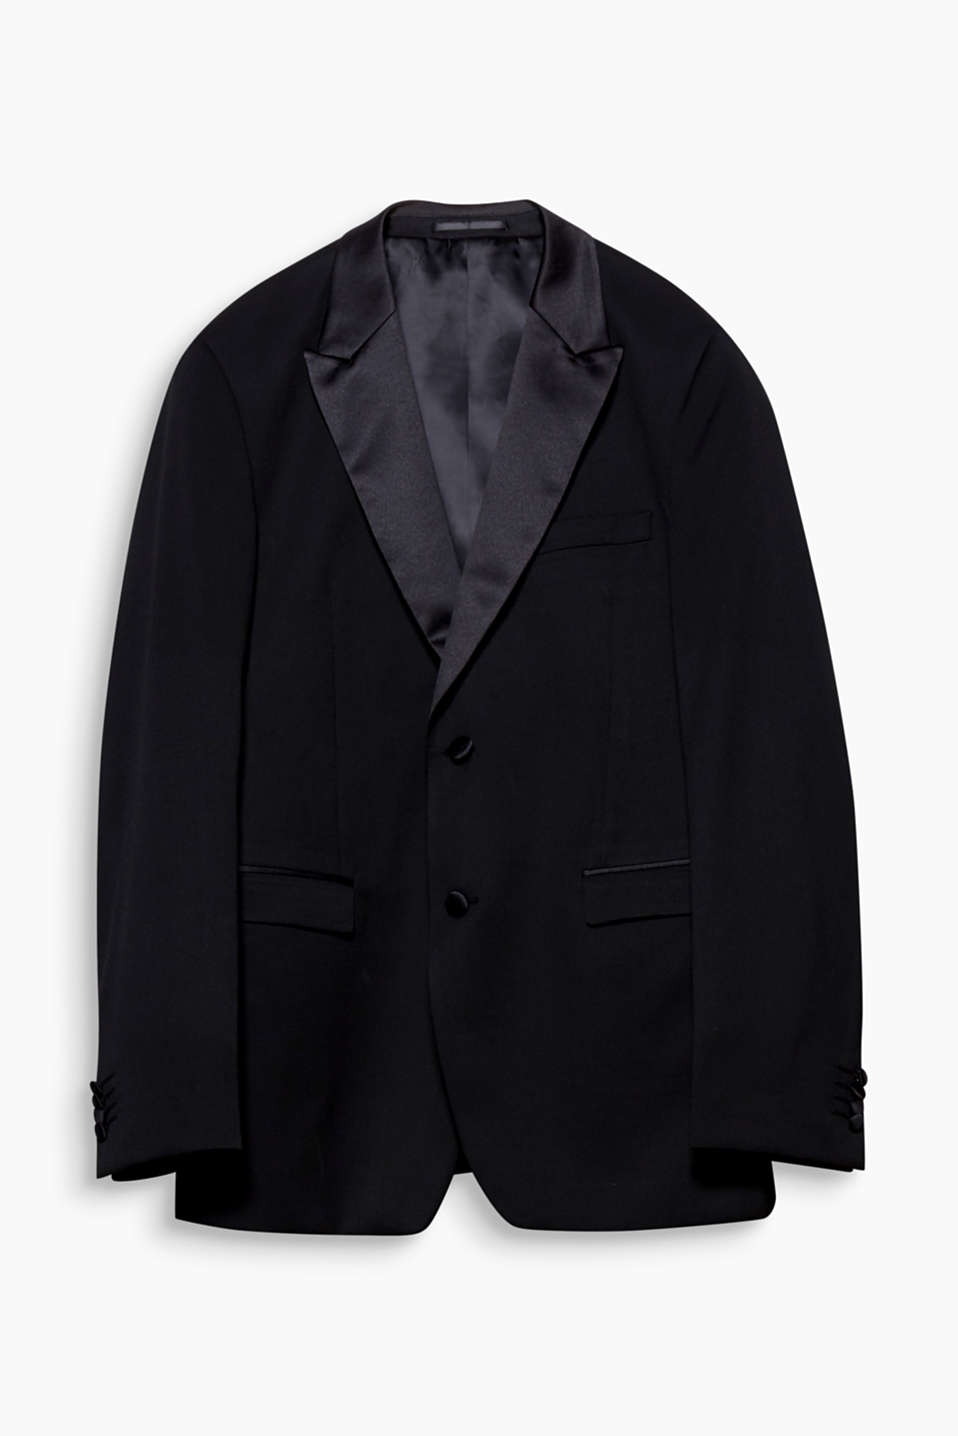 Dress code: Black tie. No problem with this classic, slim-fitting dinner jacket.